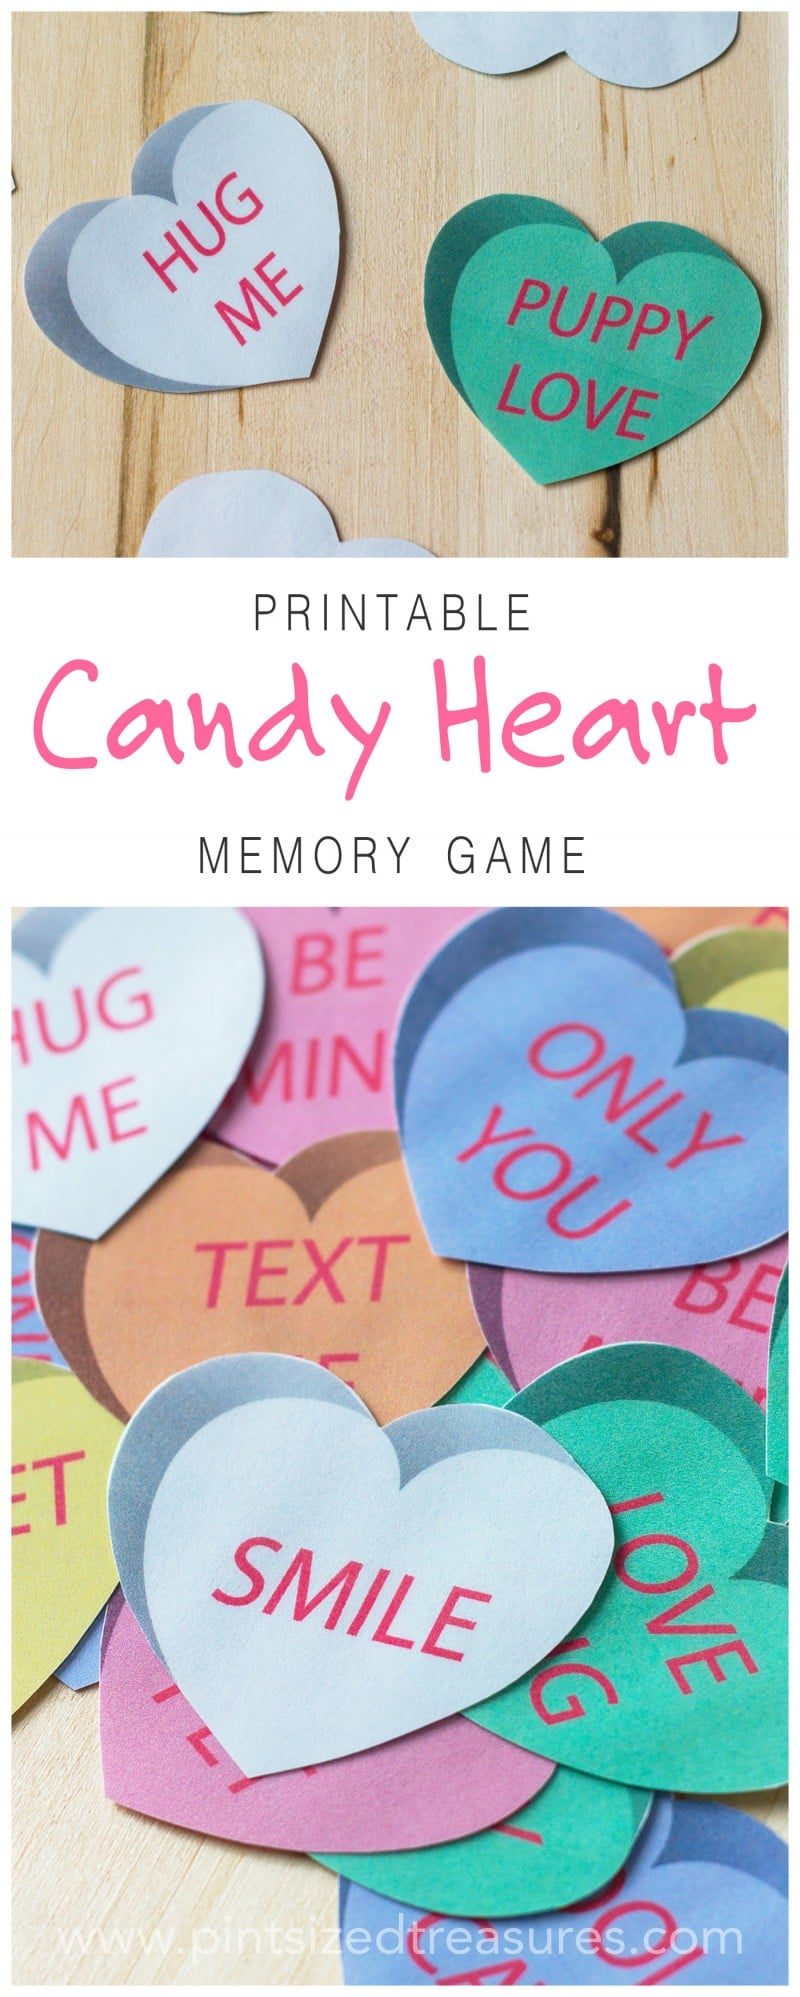 Conversation heart memory game for kids